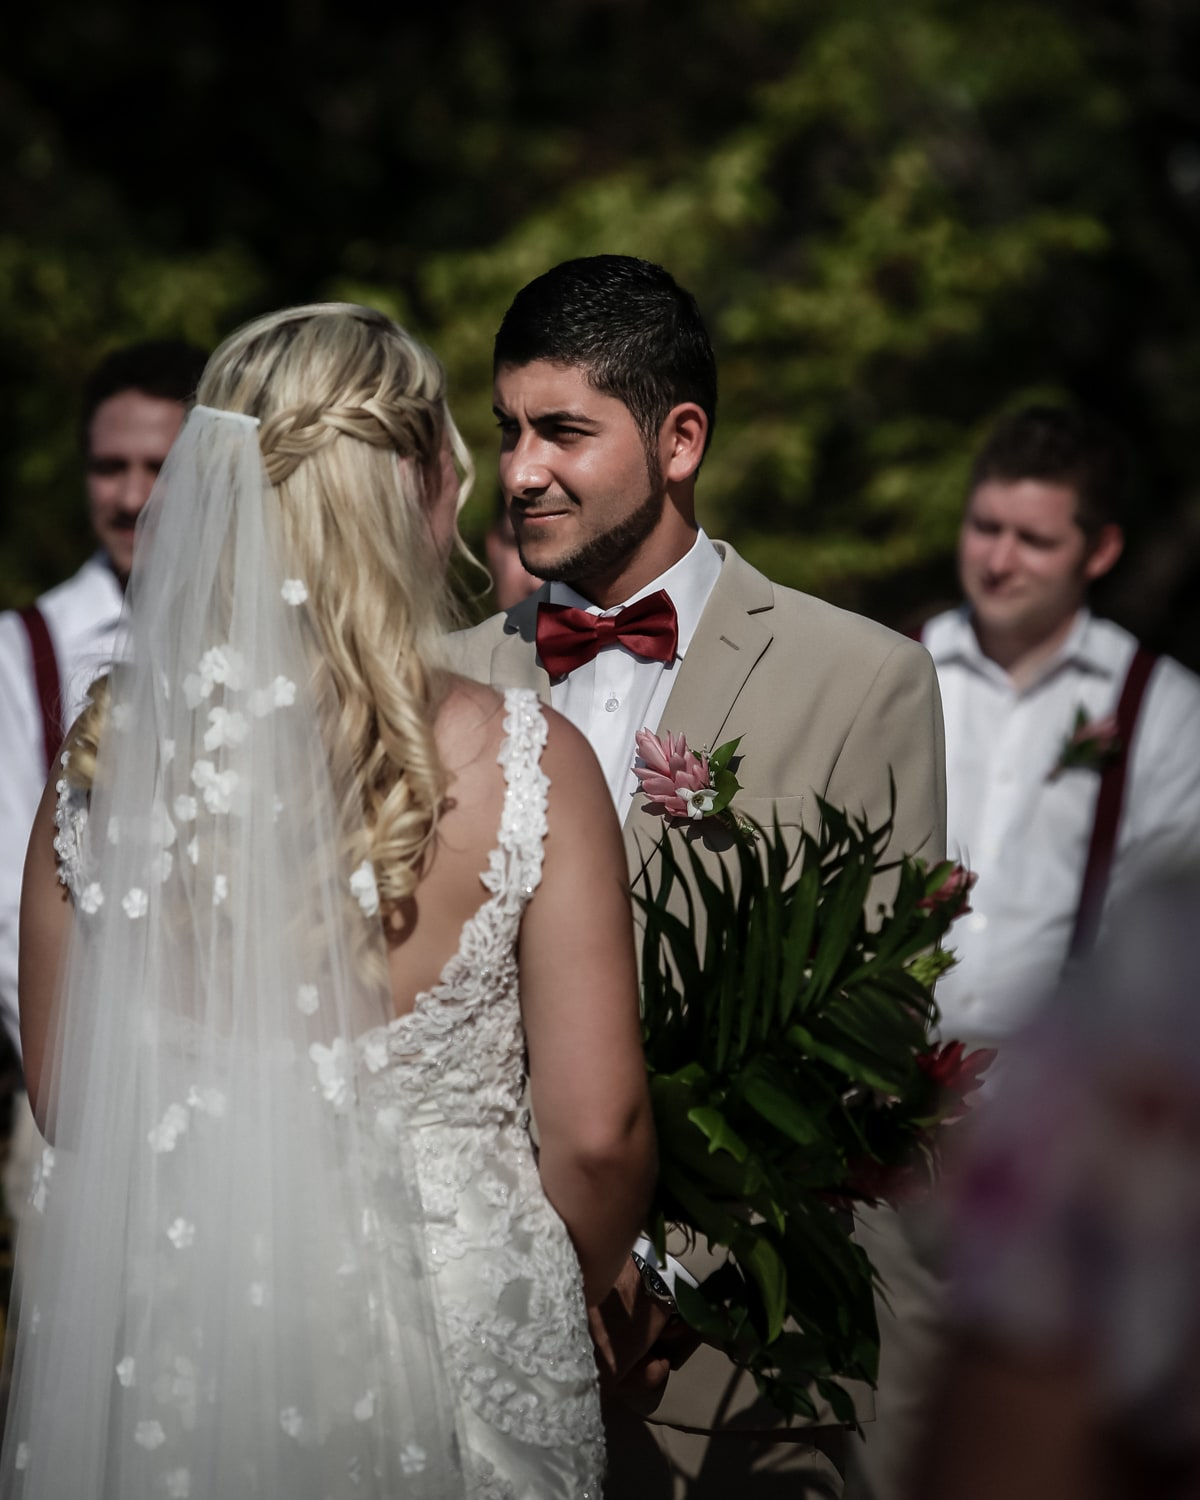 Bride with veil in hair stands at altar with husband.